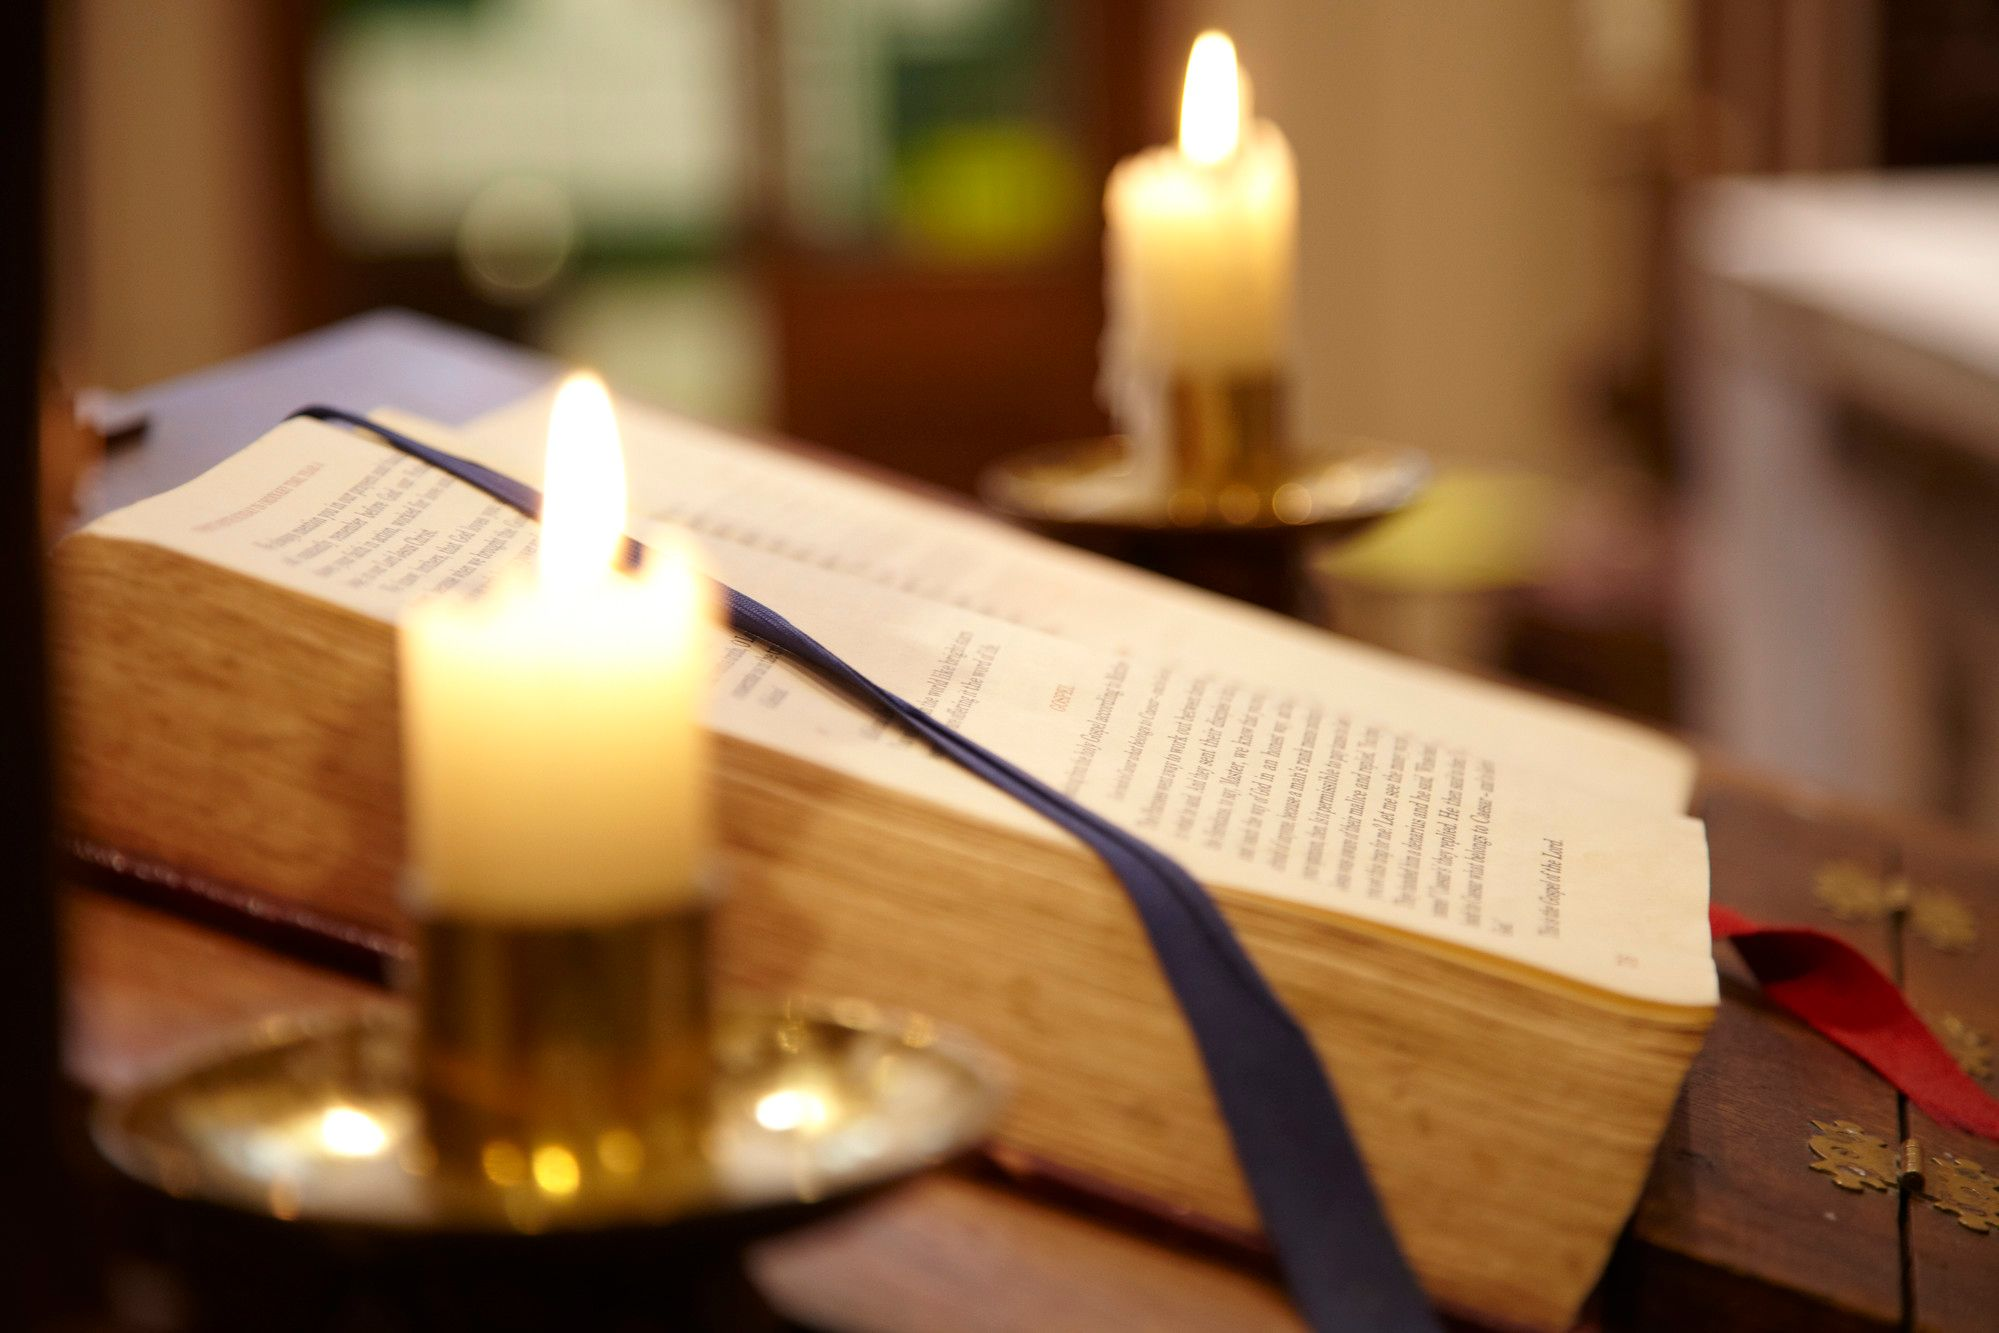 Close-up of church candle with book behind